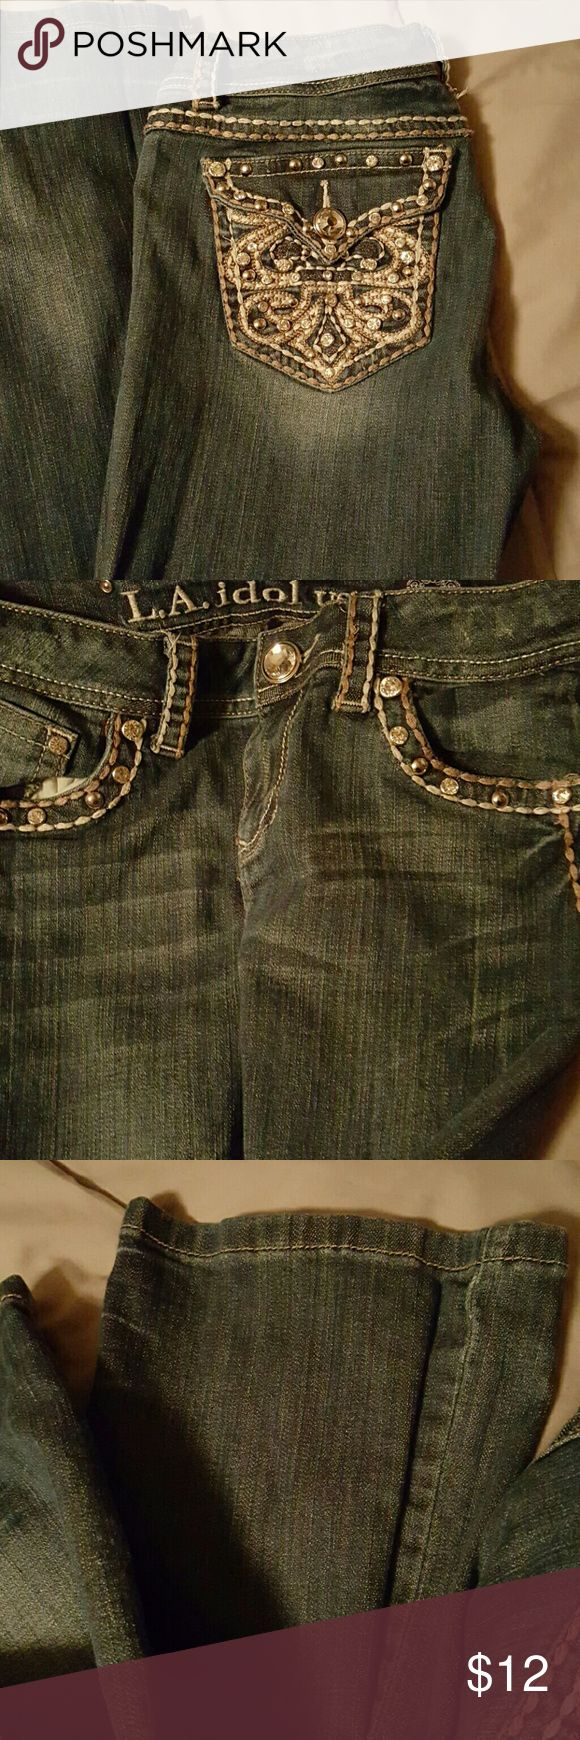 La idol jeans Worn a few times. 31 waist. 34 length.  Great condition. la idols  Jeans